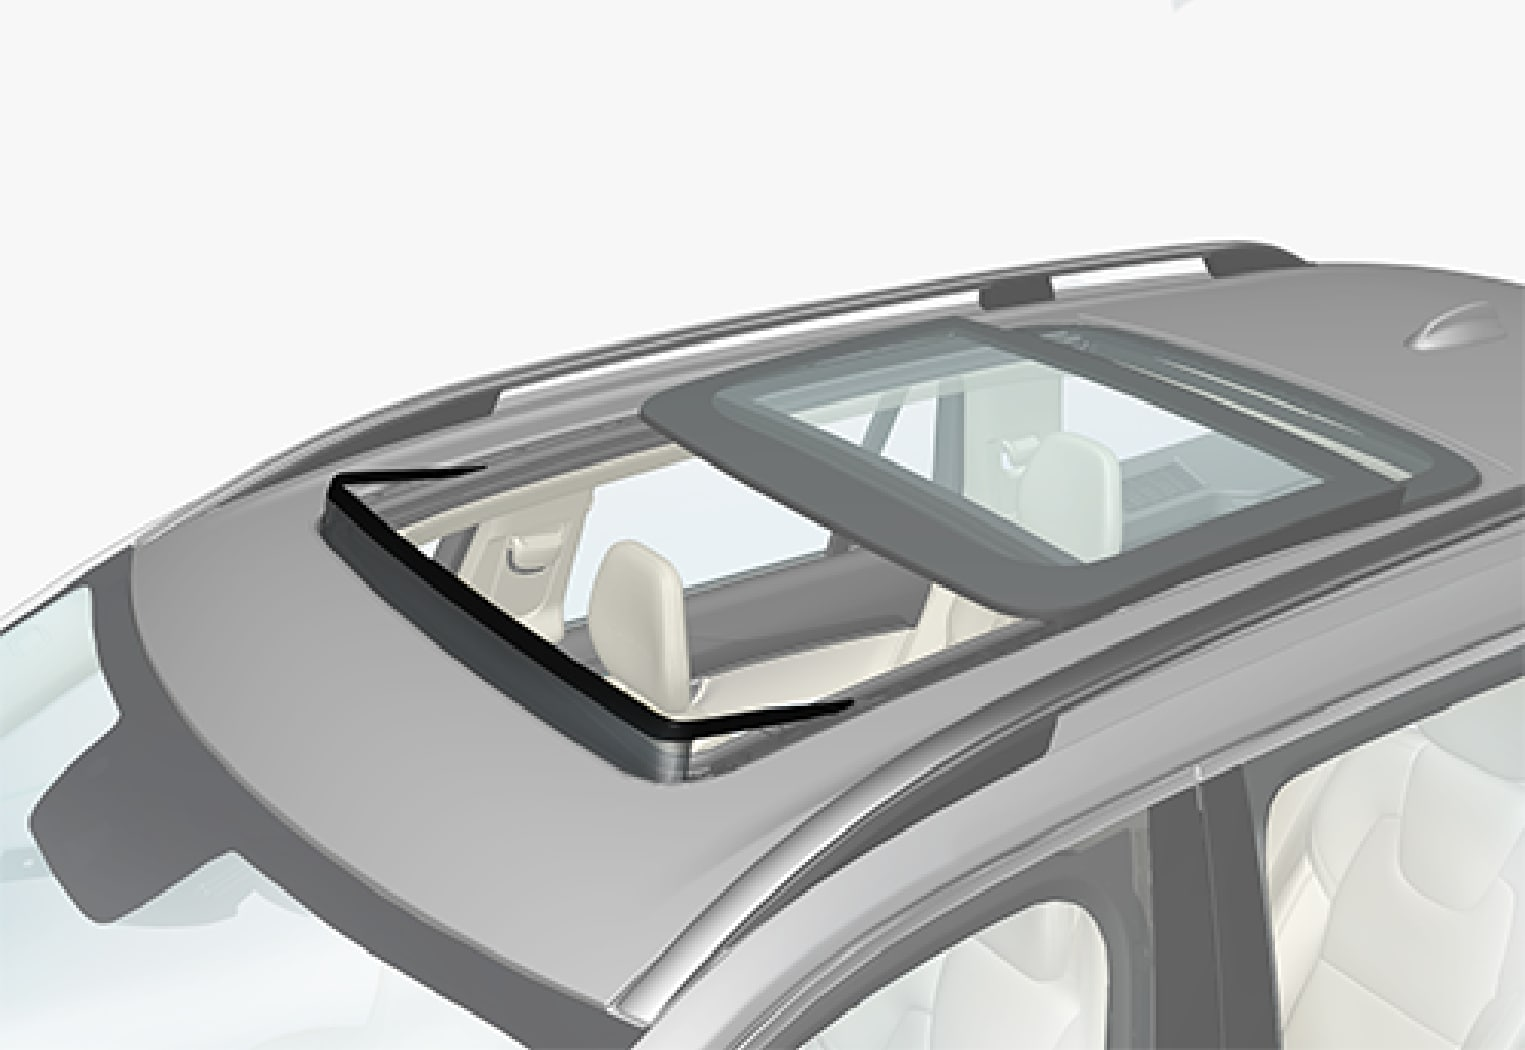 P5-1507 Panoramic roof wind deflector